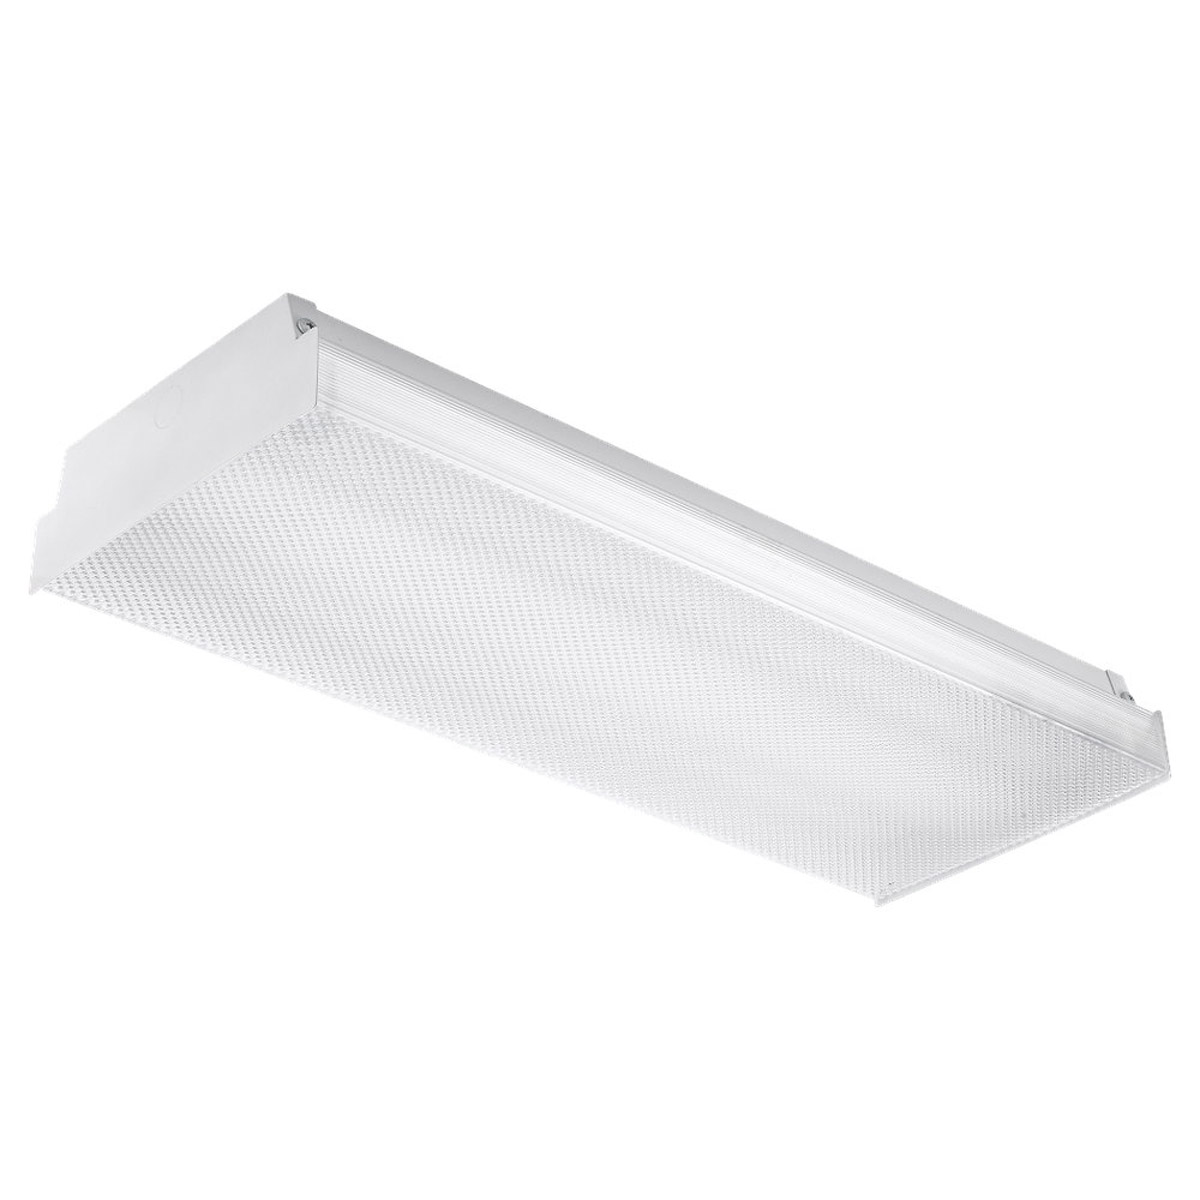 Sea Gull Lighting Signature 2 Light Fluorescent Flush Mount in White 59033LE-15 photo